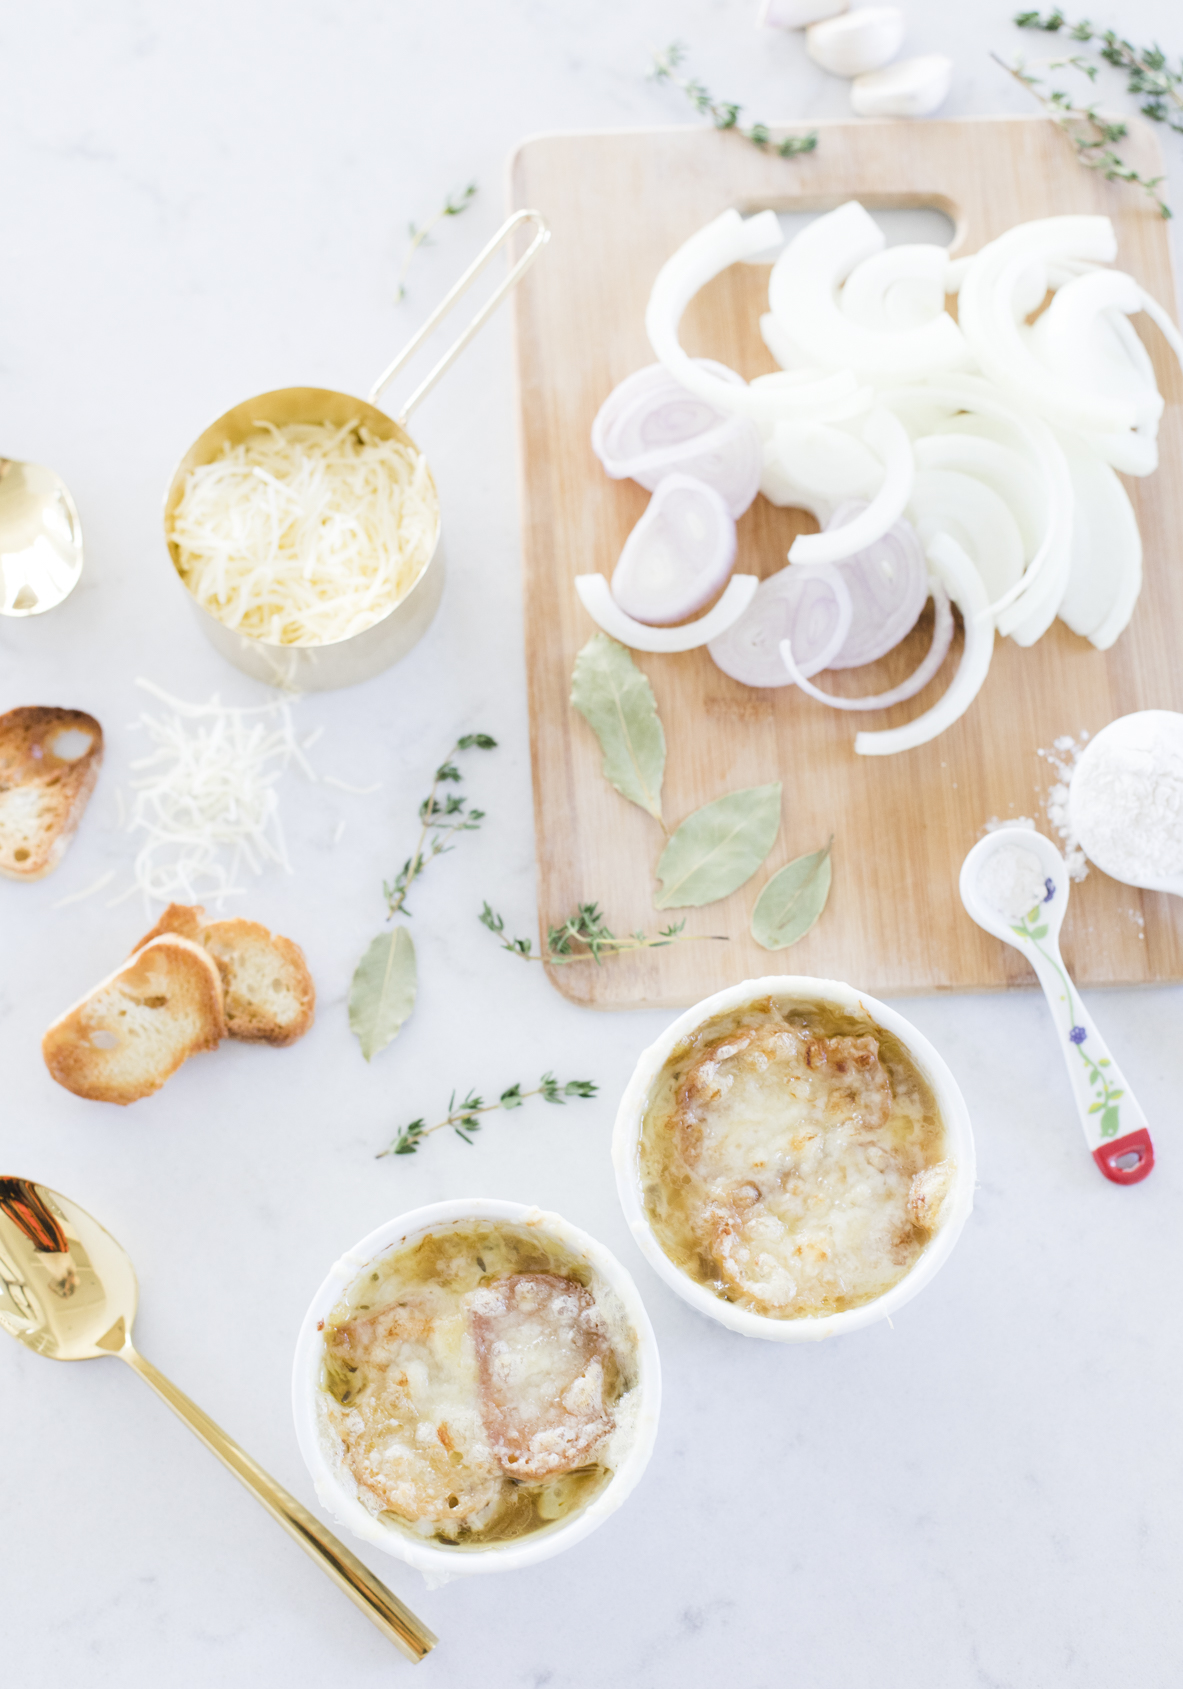 French Onion Soup Recipes